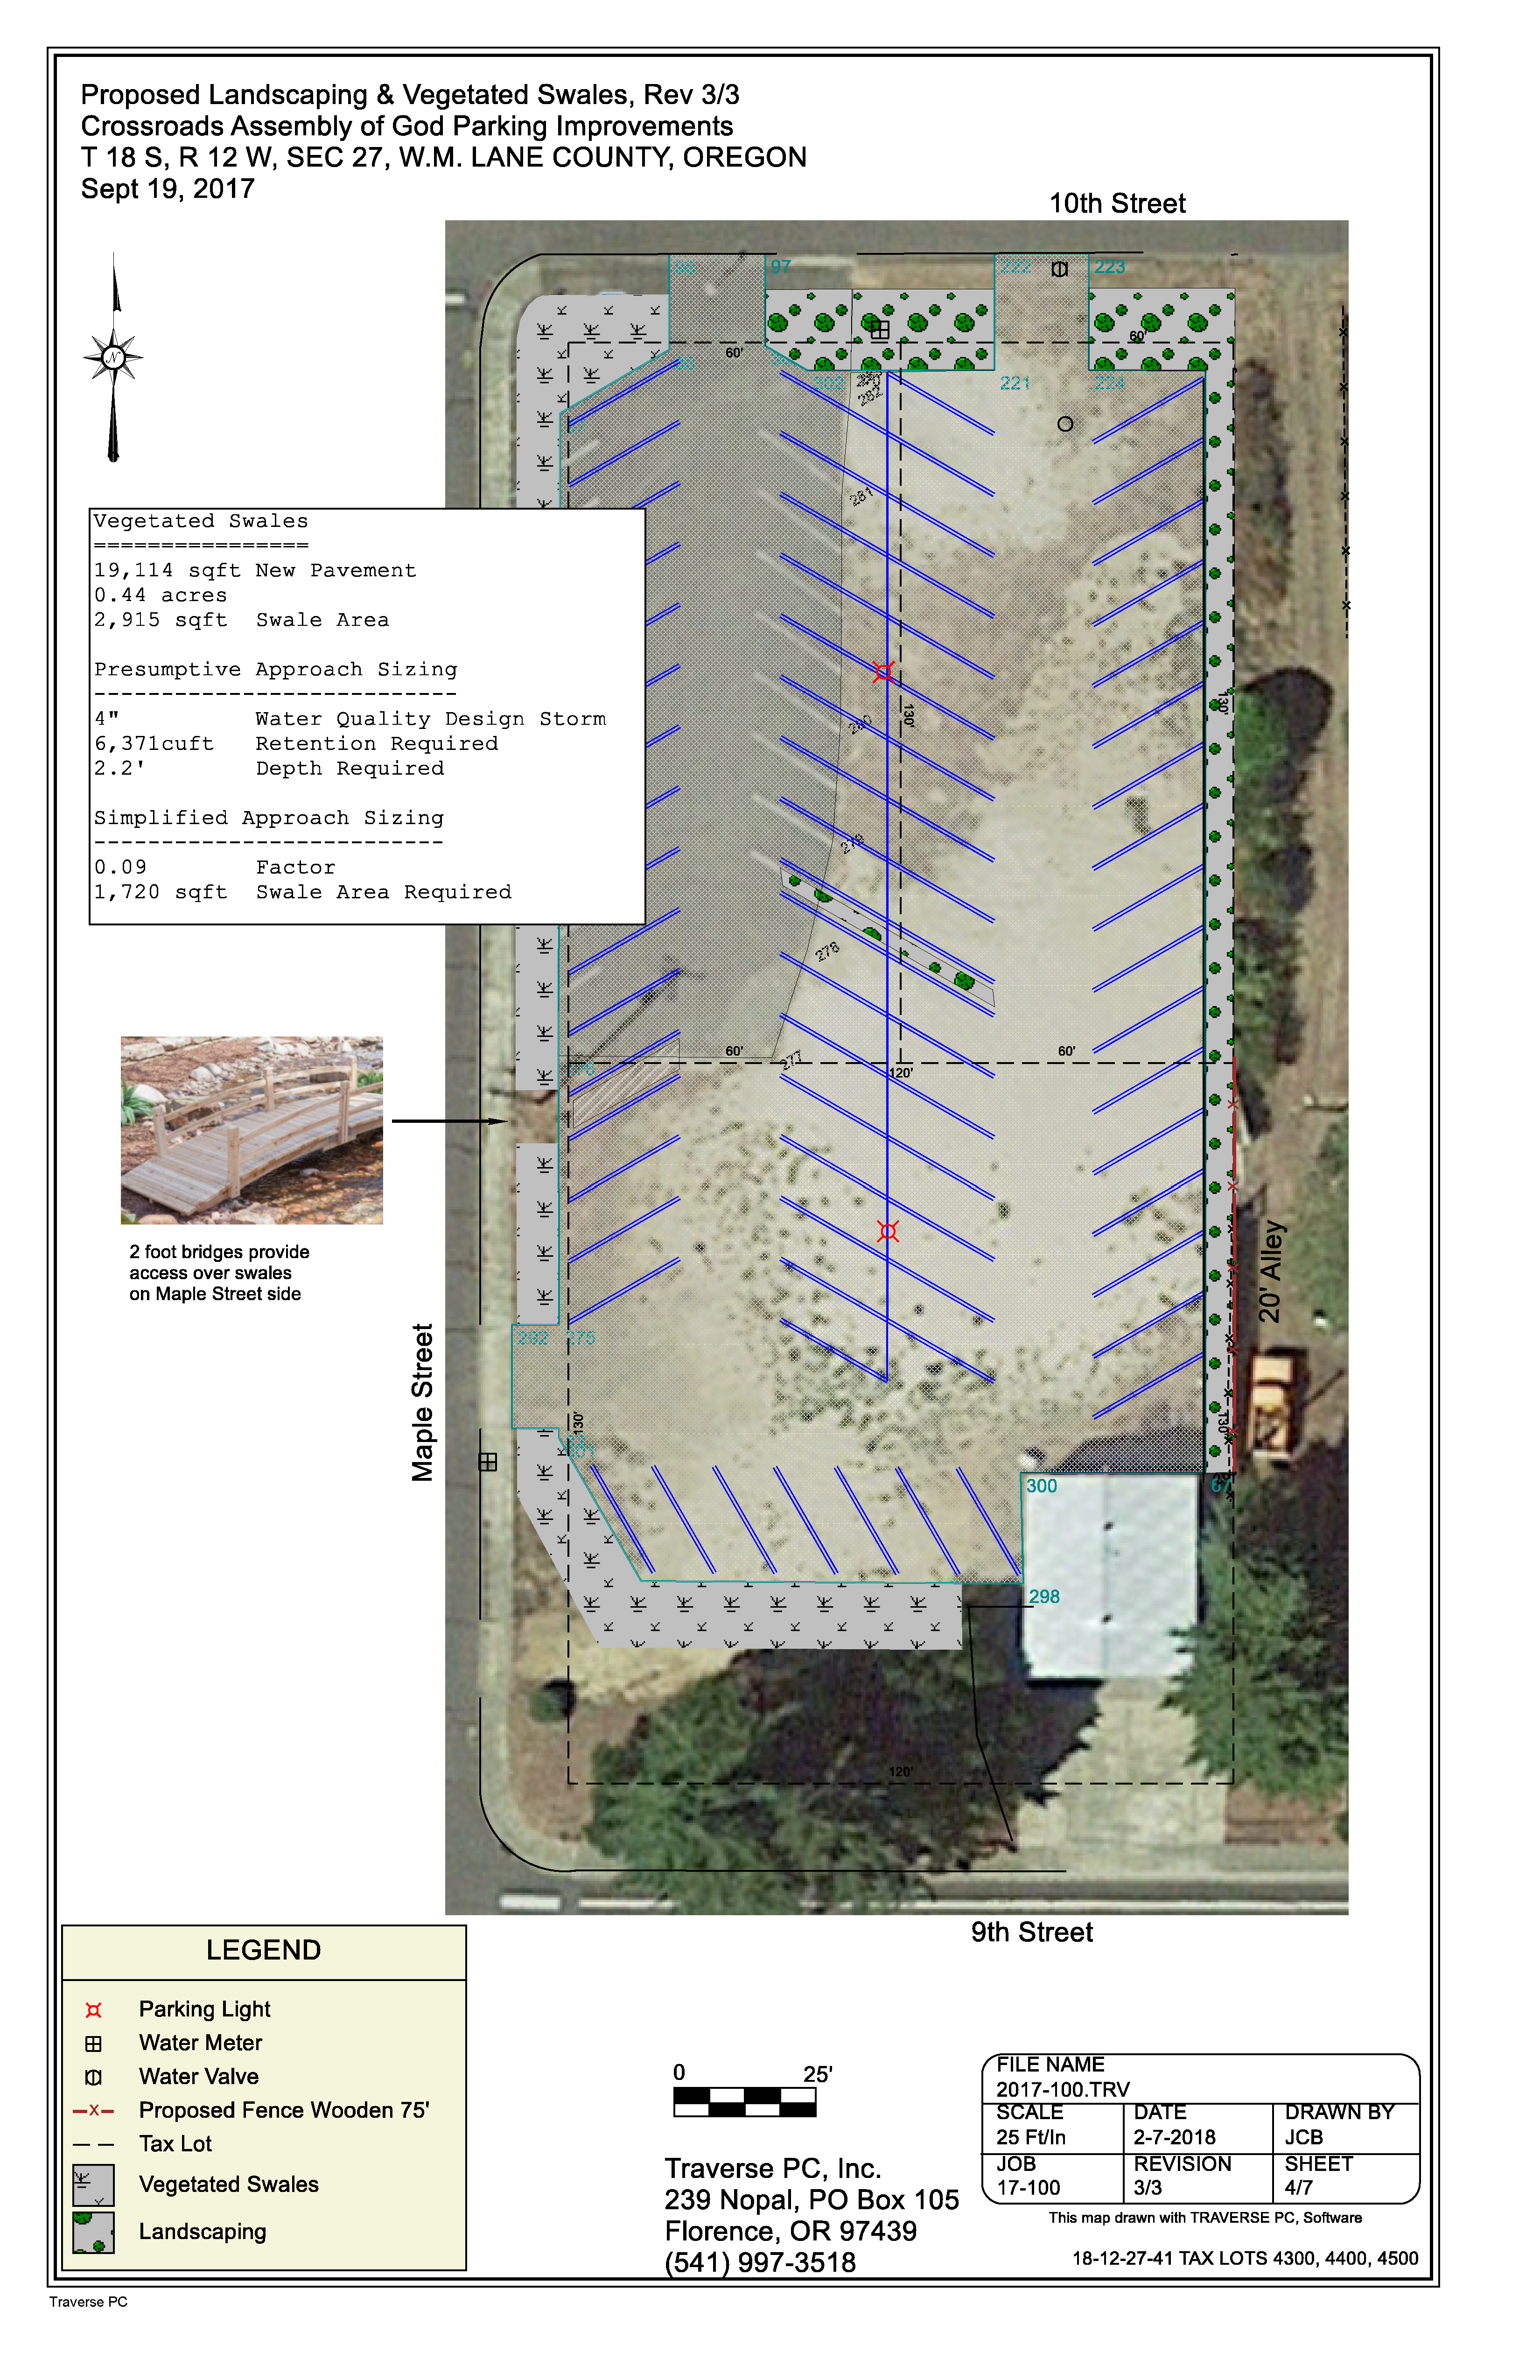 Landscape mapping and planning